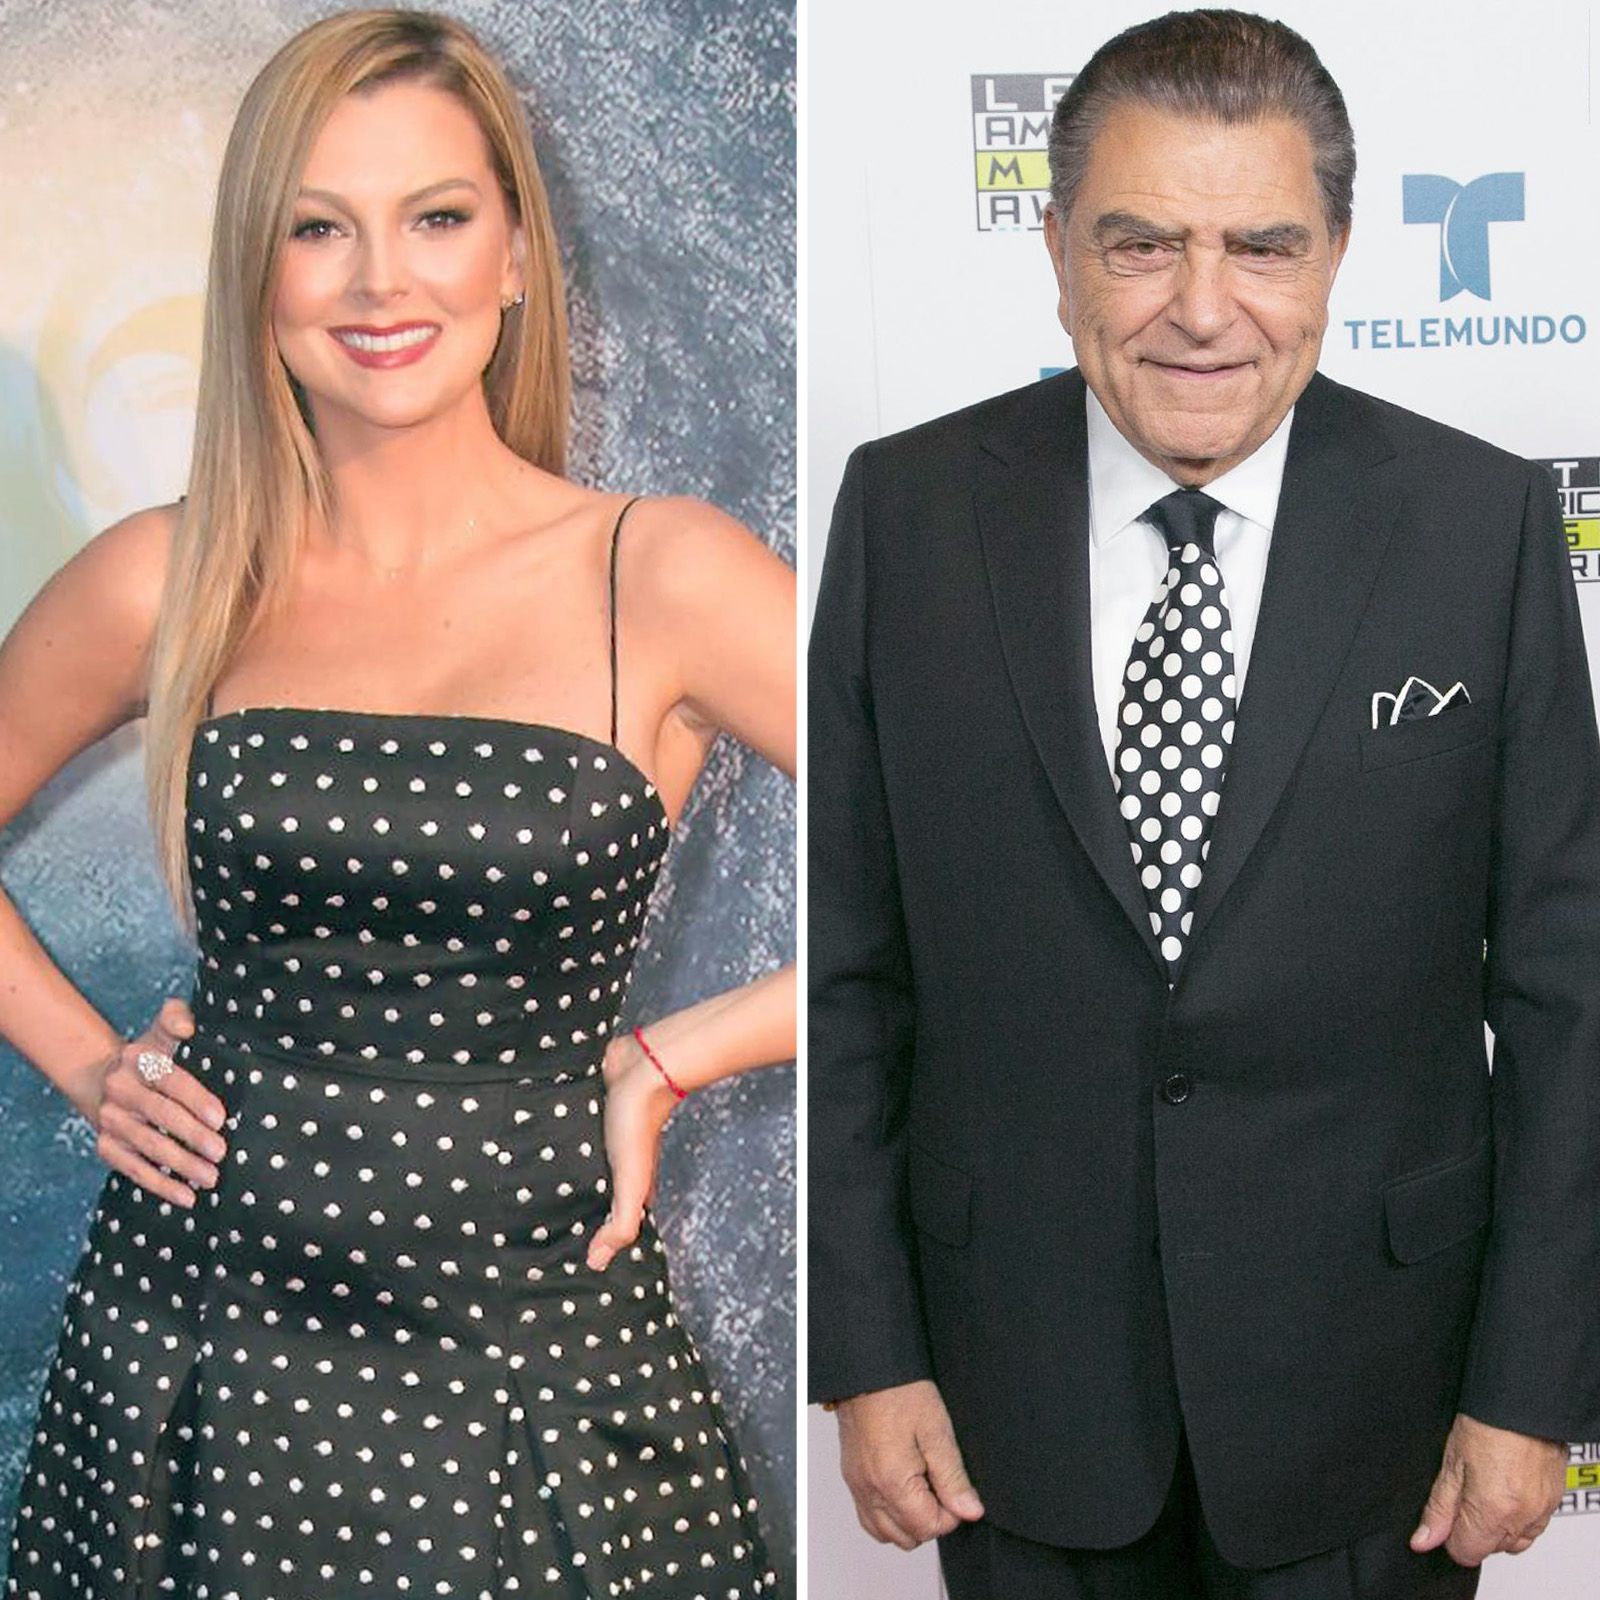 Marjorie de Sousa y Don Francisco